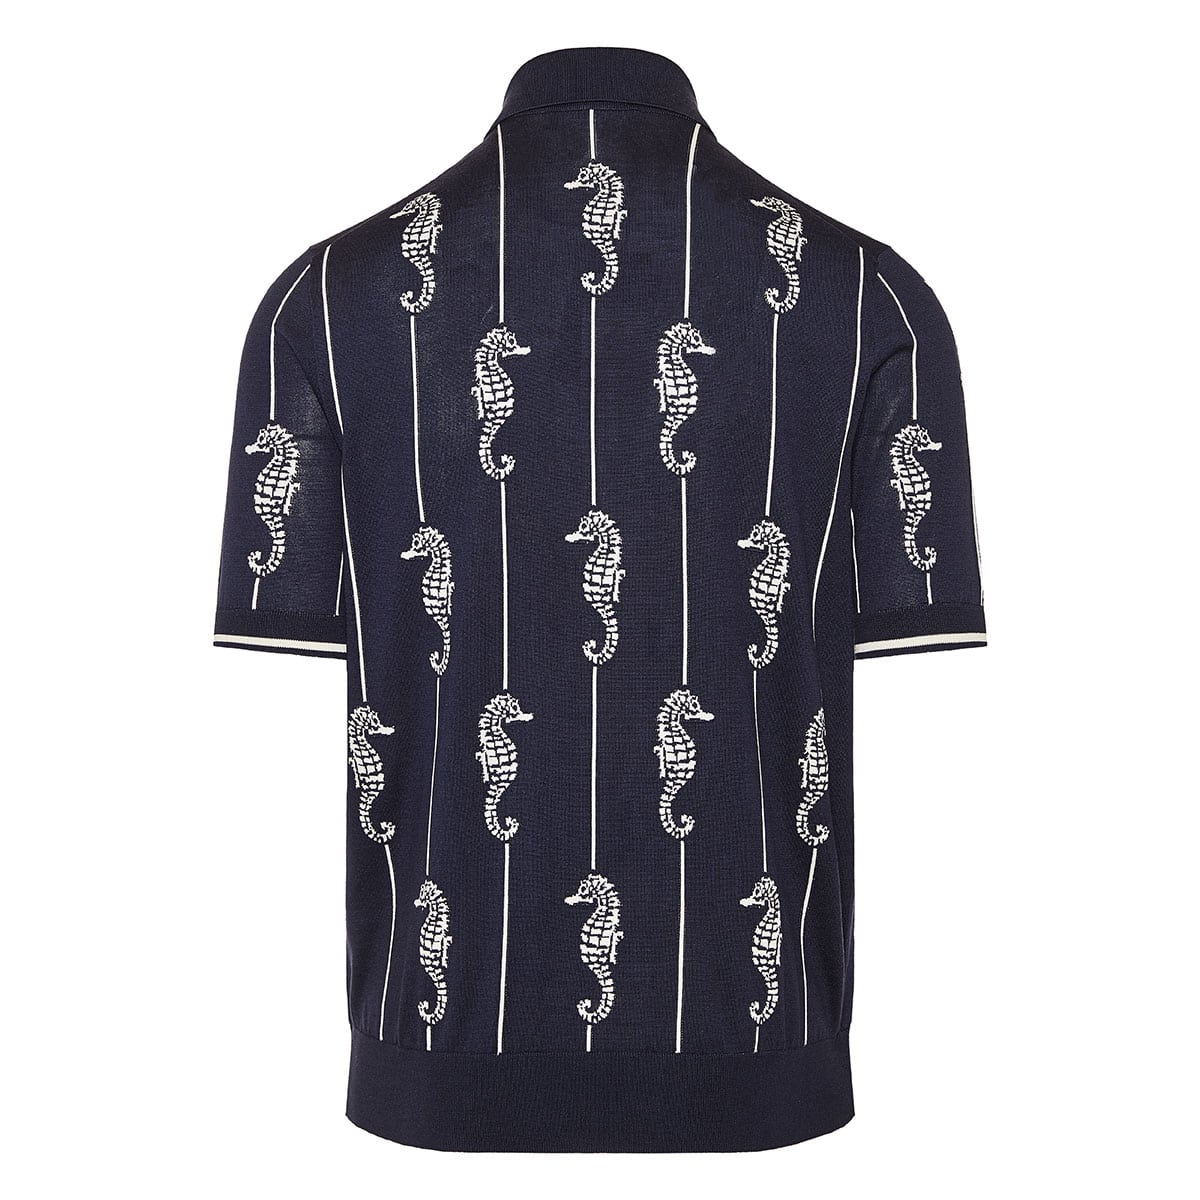 Seahorse knitted polo shirt